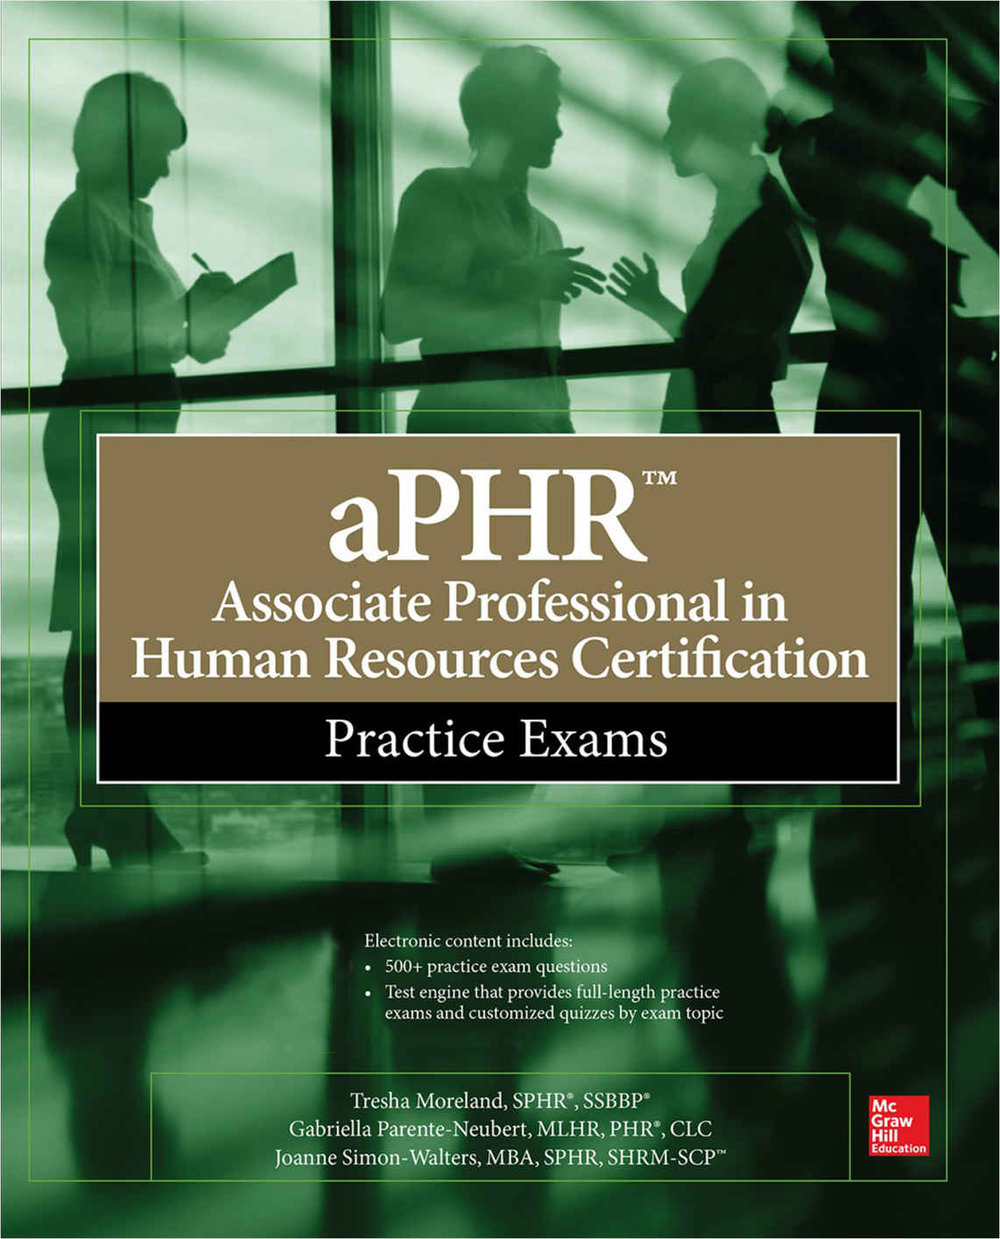 aPHR cover.jpg